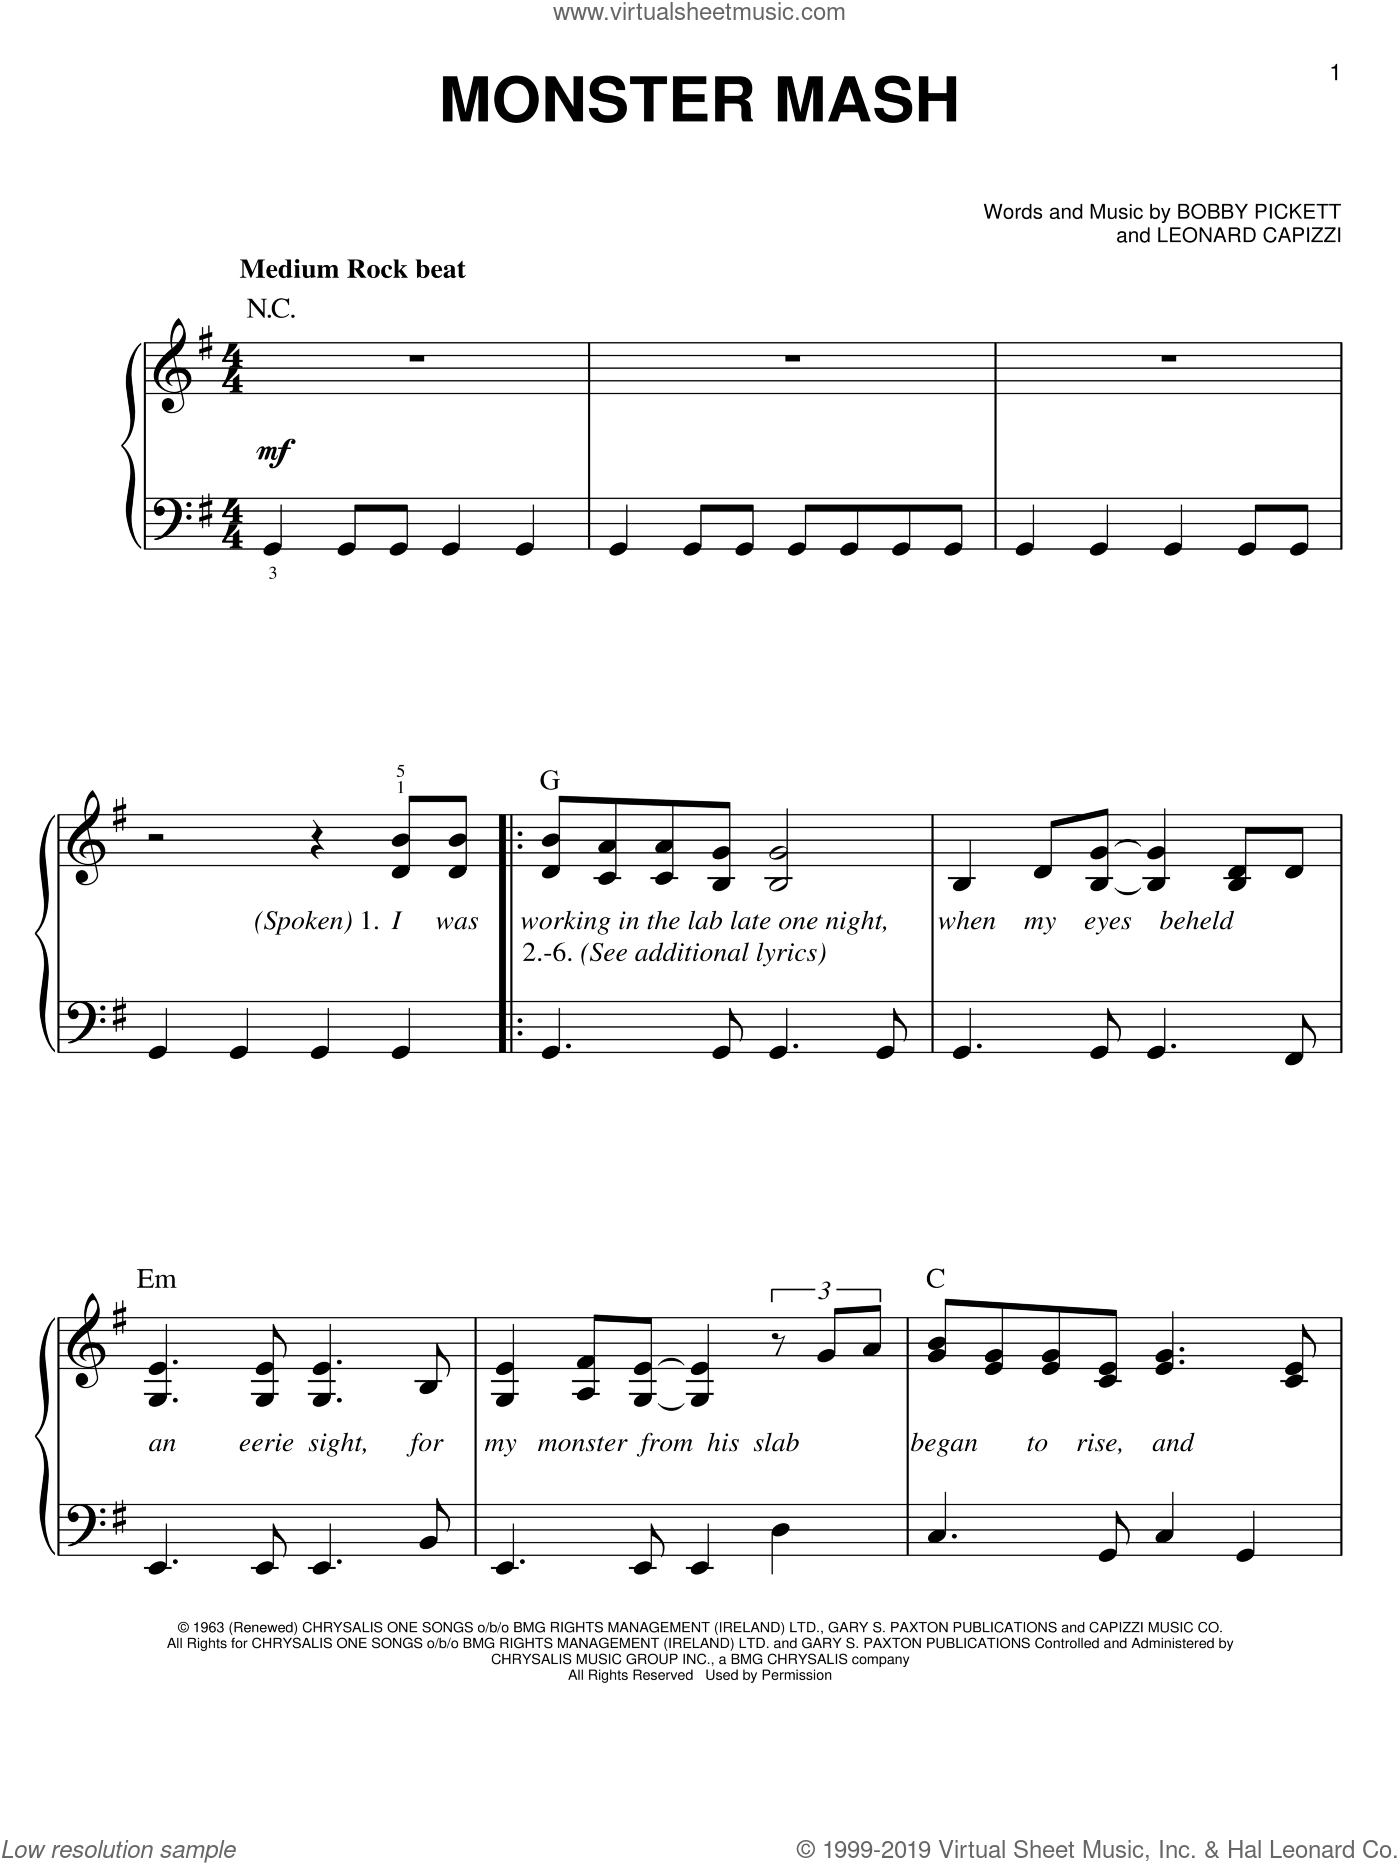 Monster Mash sheet music for piano solo by Bobby Pickett and Leonard Capizzi, easy skill level